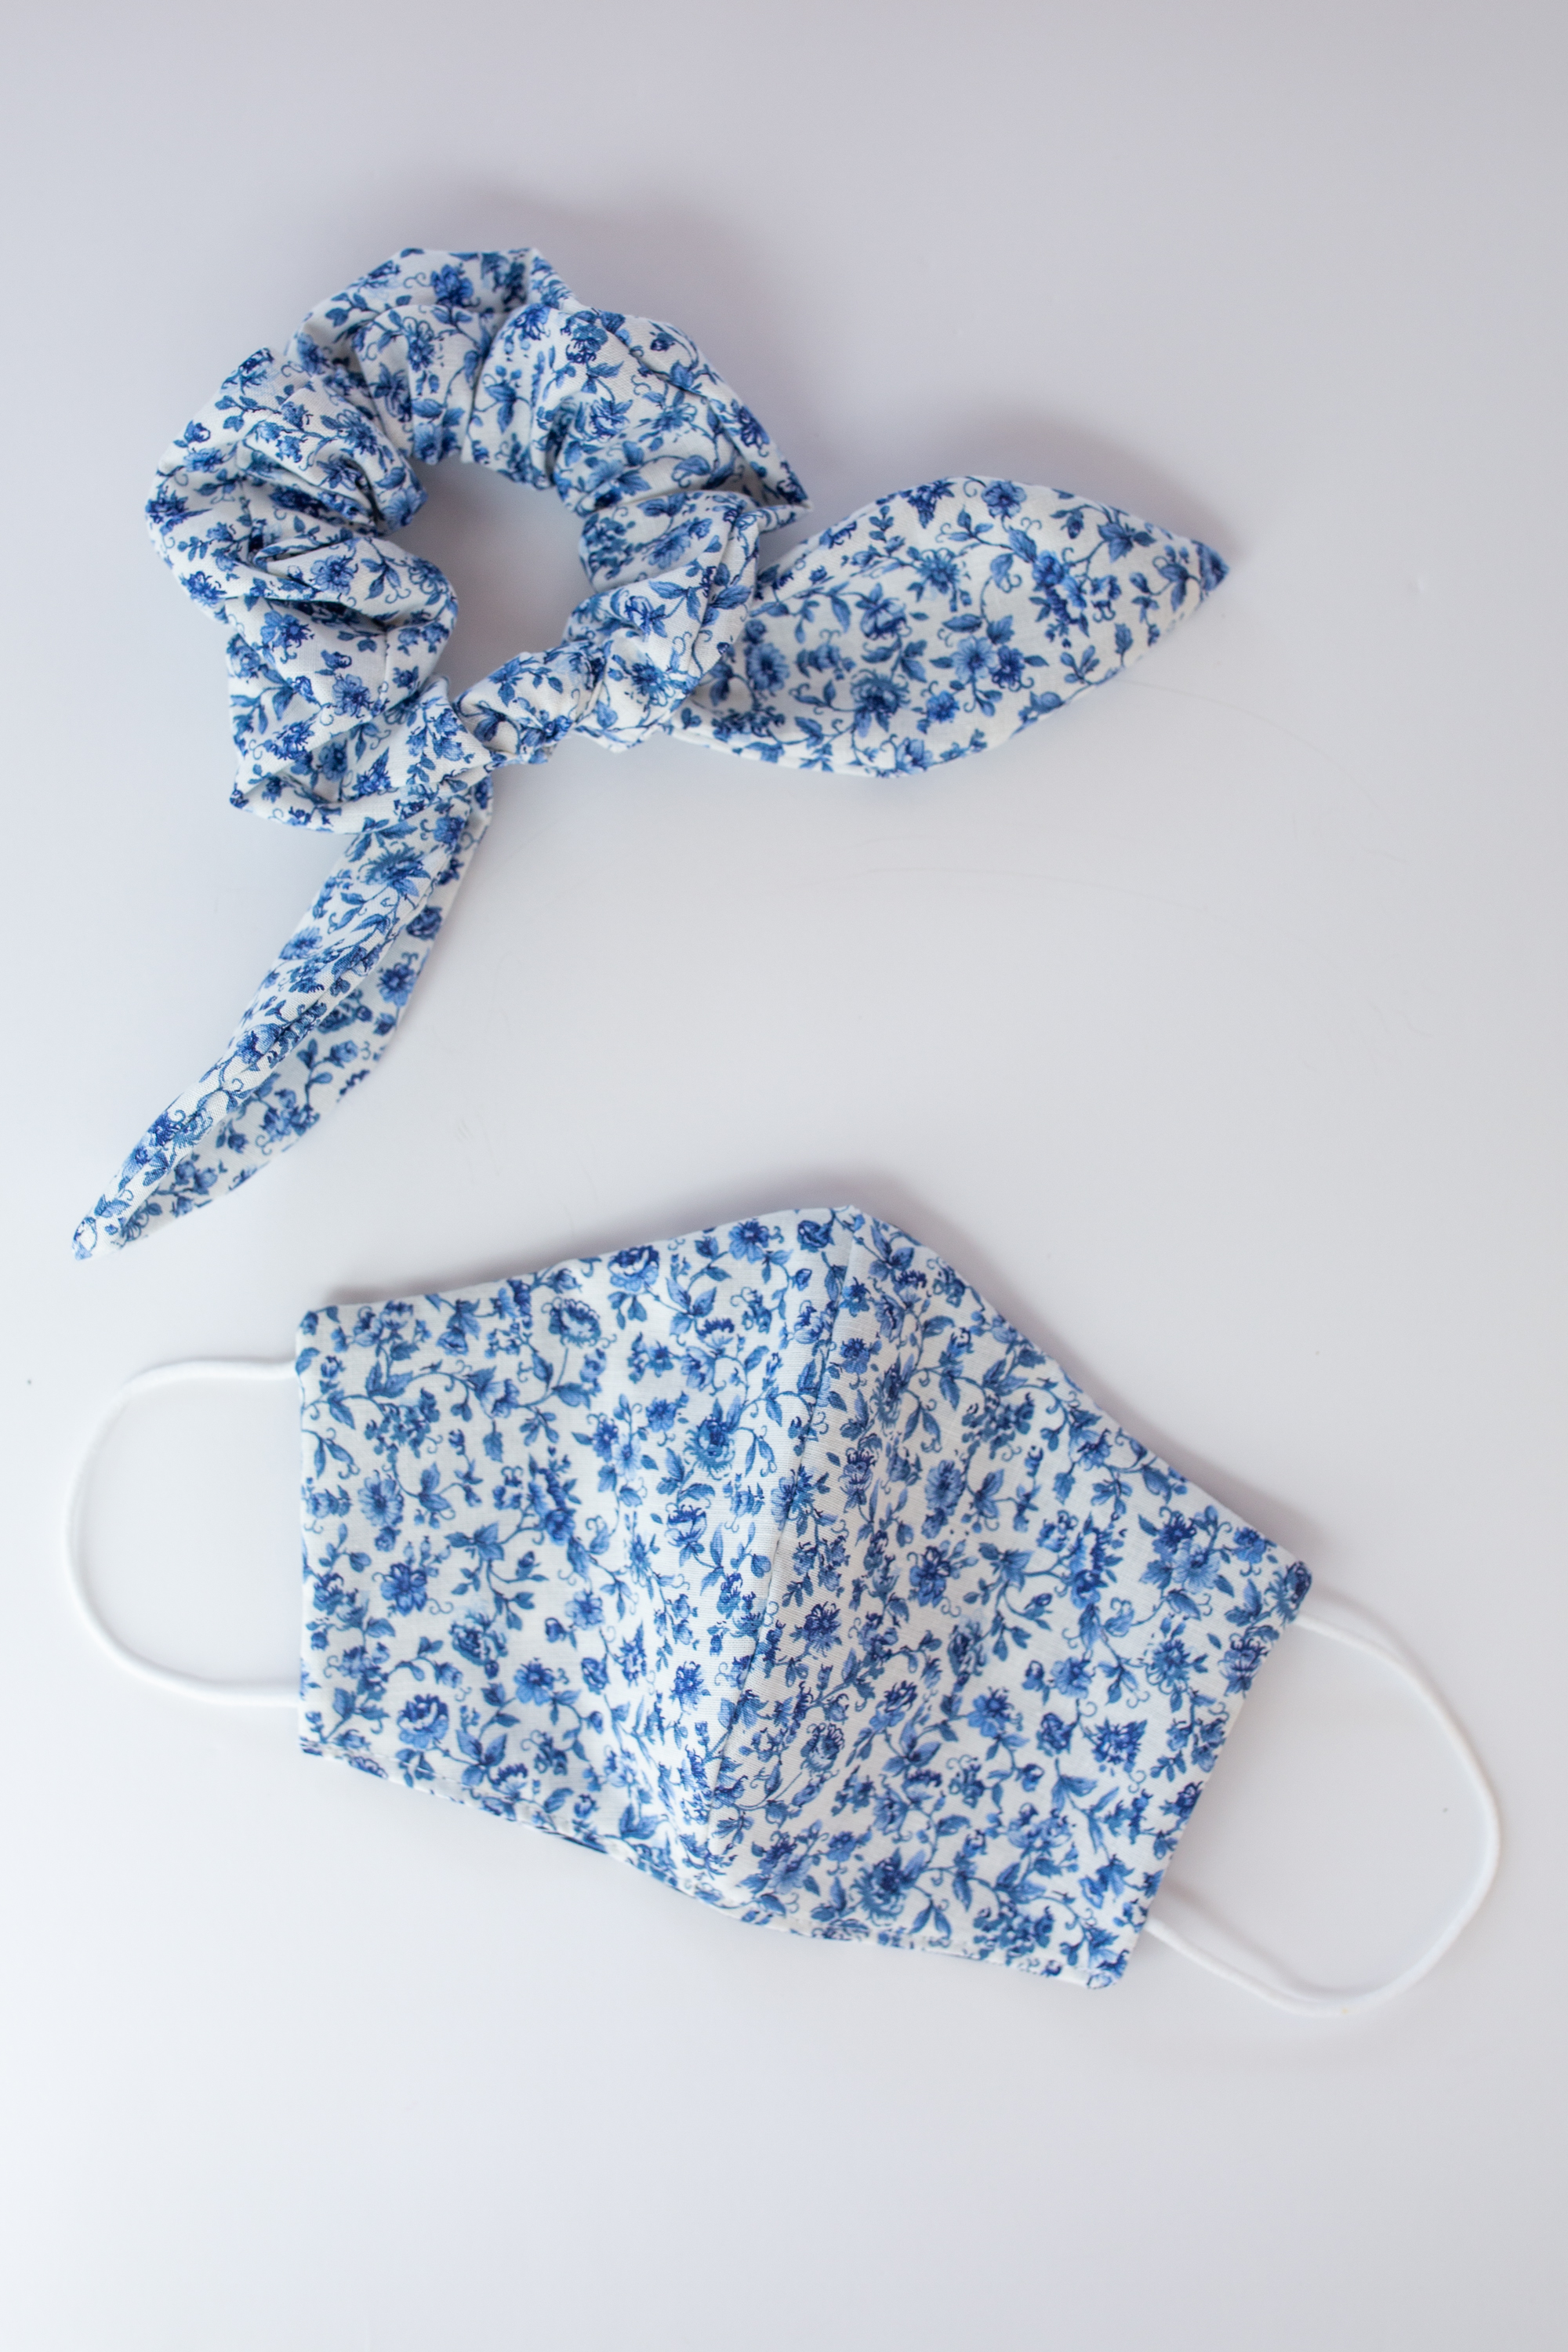 Matching Floral Scrunchie and Face Mask Set / Face Mask for Fall / Preppy Style / Preppy Outfit / Gingham Print / Bow Scrunchie / Hair Accessory  - Sunshine Style